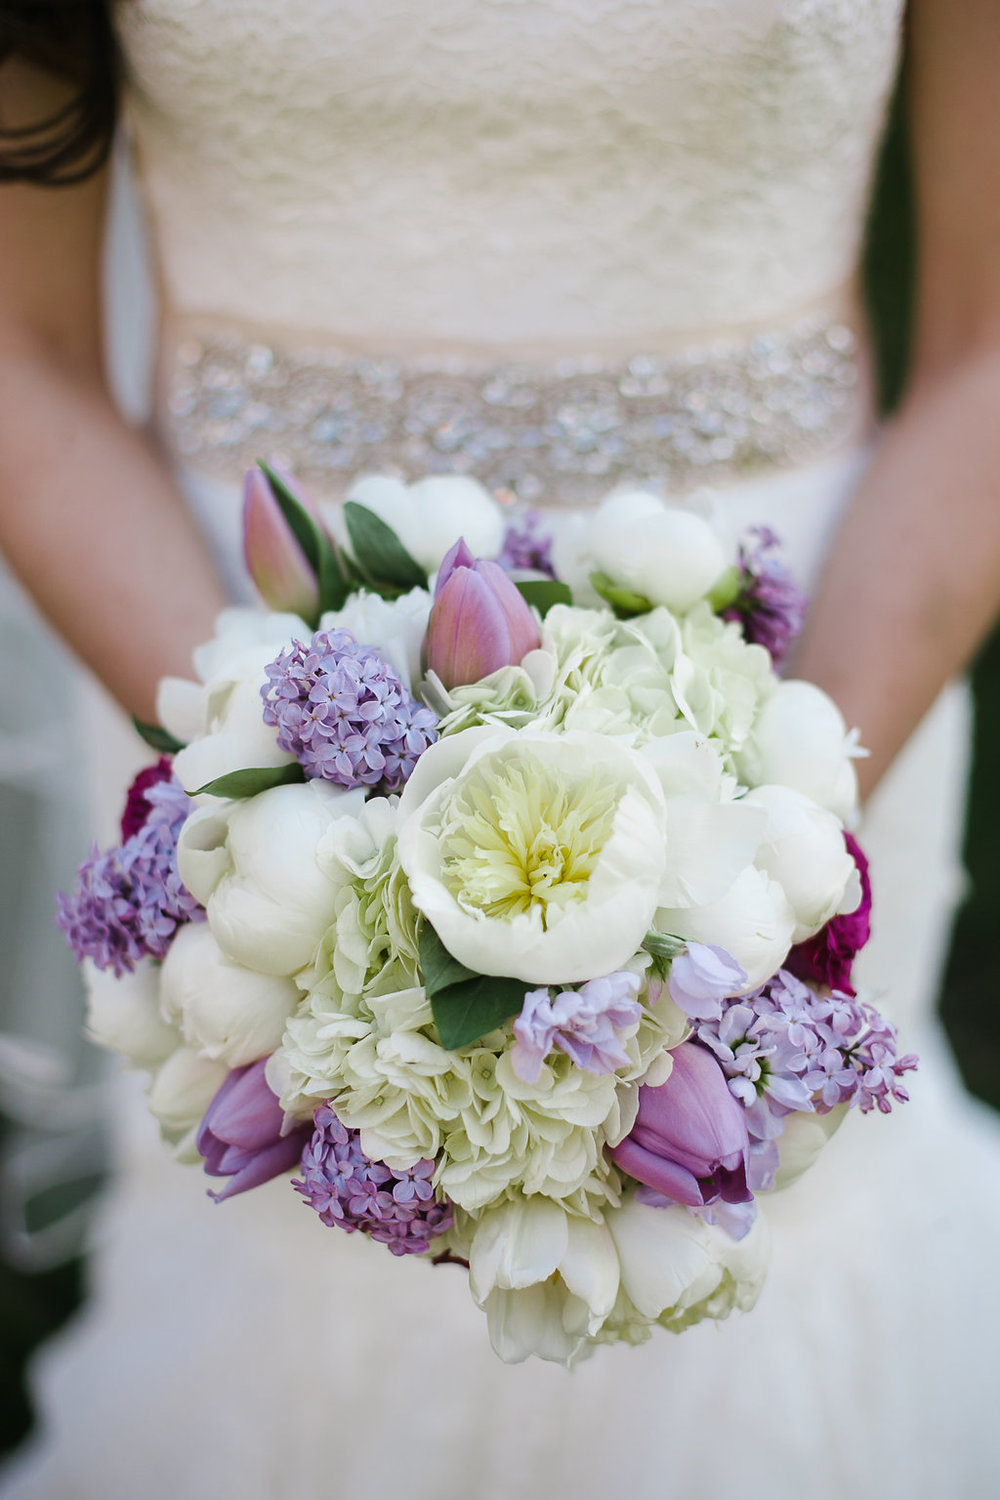 Purple and White Florals (Photo Credit: Karlo Photography)